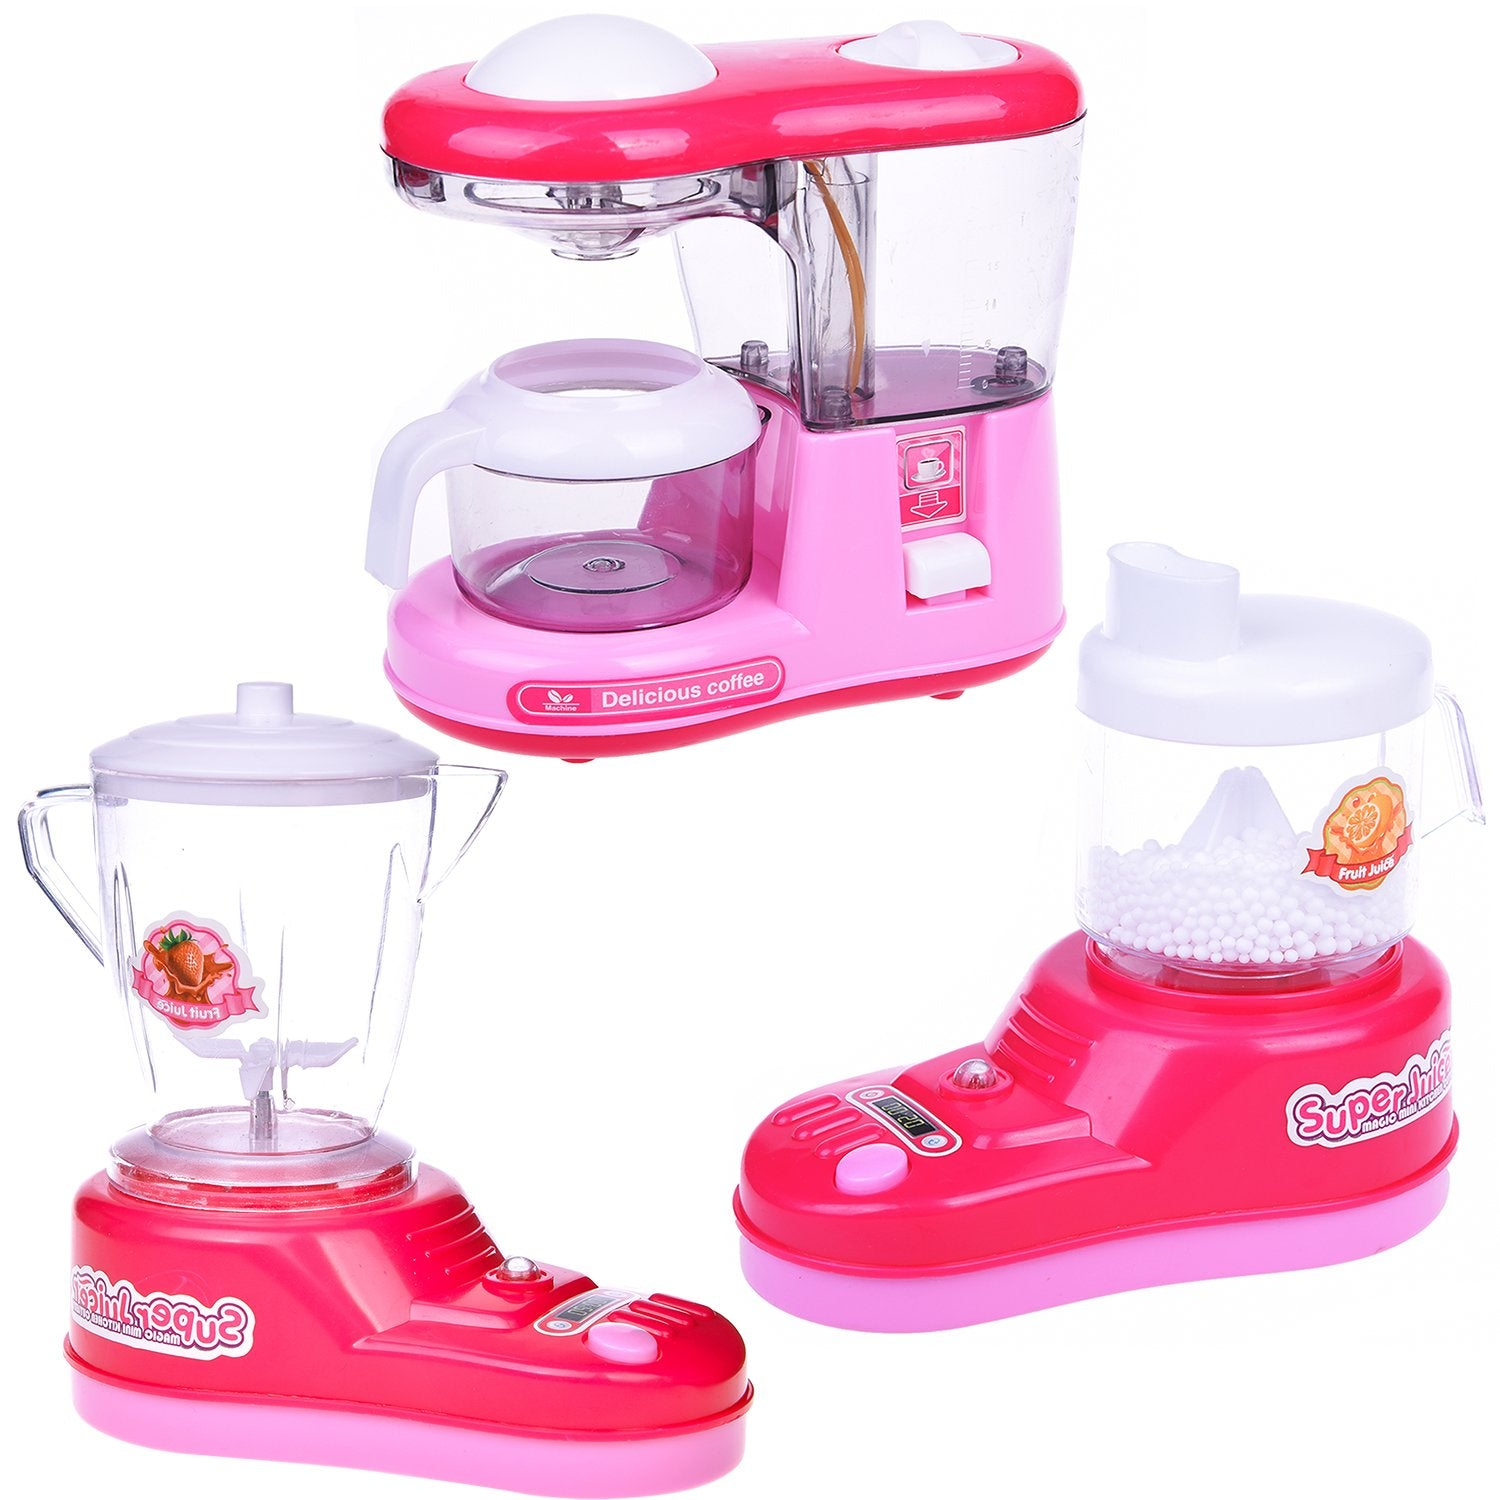 Kitchen Toy Appliances for Girls, Juice Maker, Blender, Coffee Maker, Play  Kitchen Accessories for Toddlers and Kids, 3 + Year Old Girl Gifts